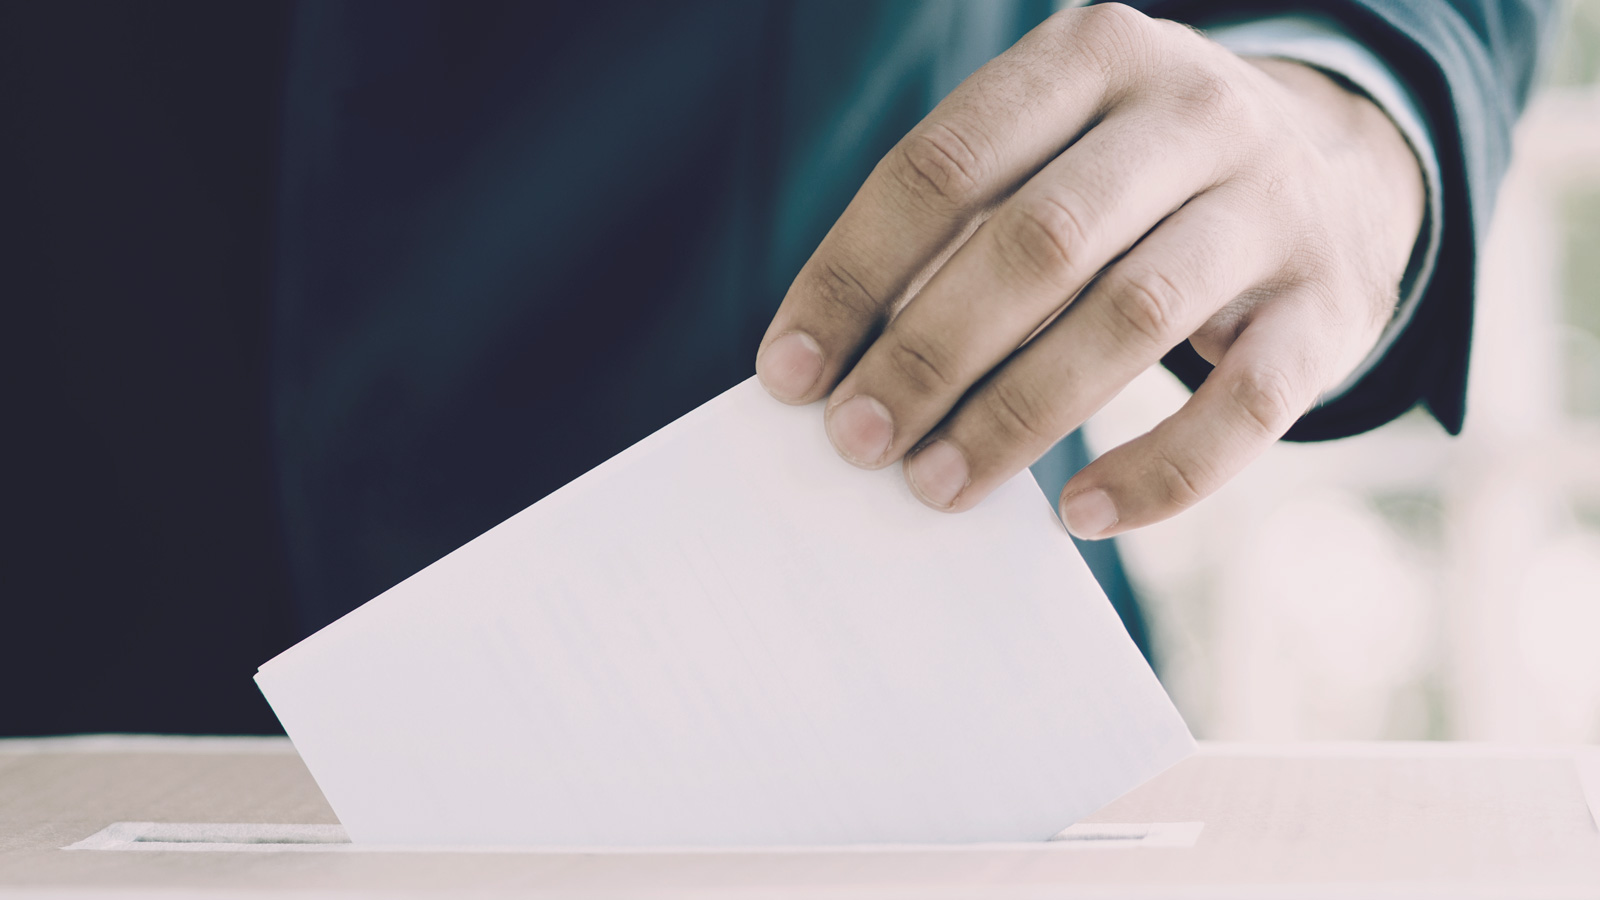 A hand posting a voting slip into a ballot box